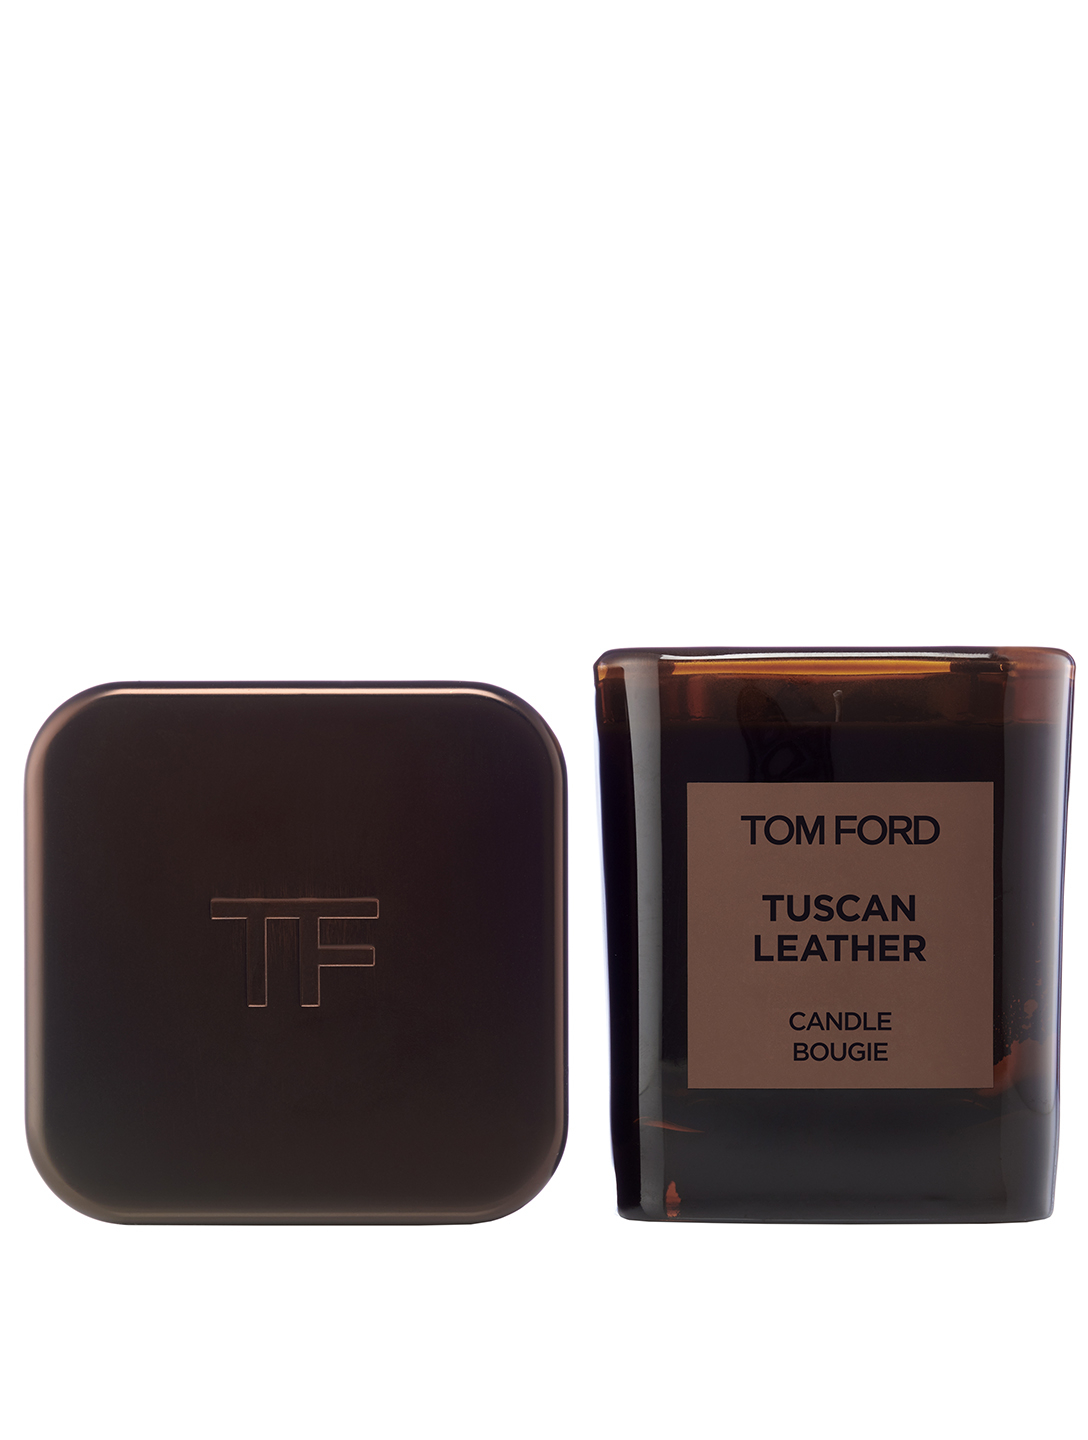 TOM FORD Tuscan Leather Private Blend Candle Beauty